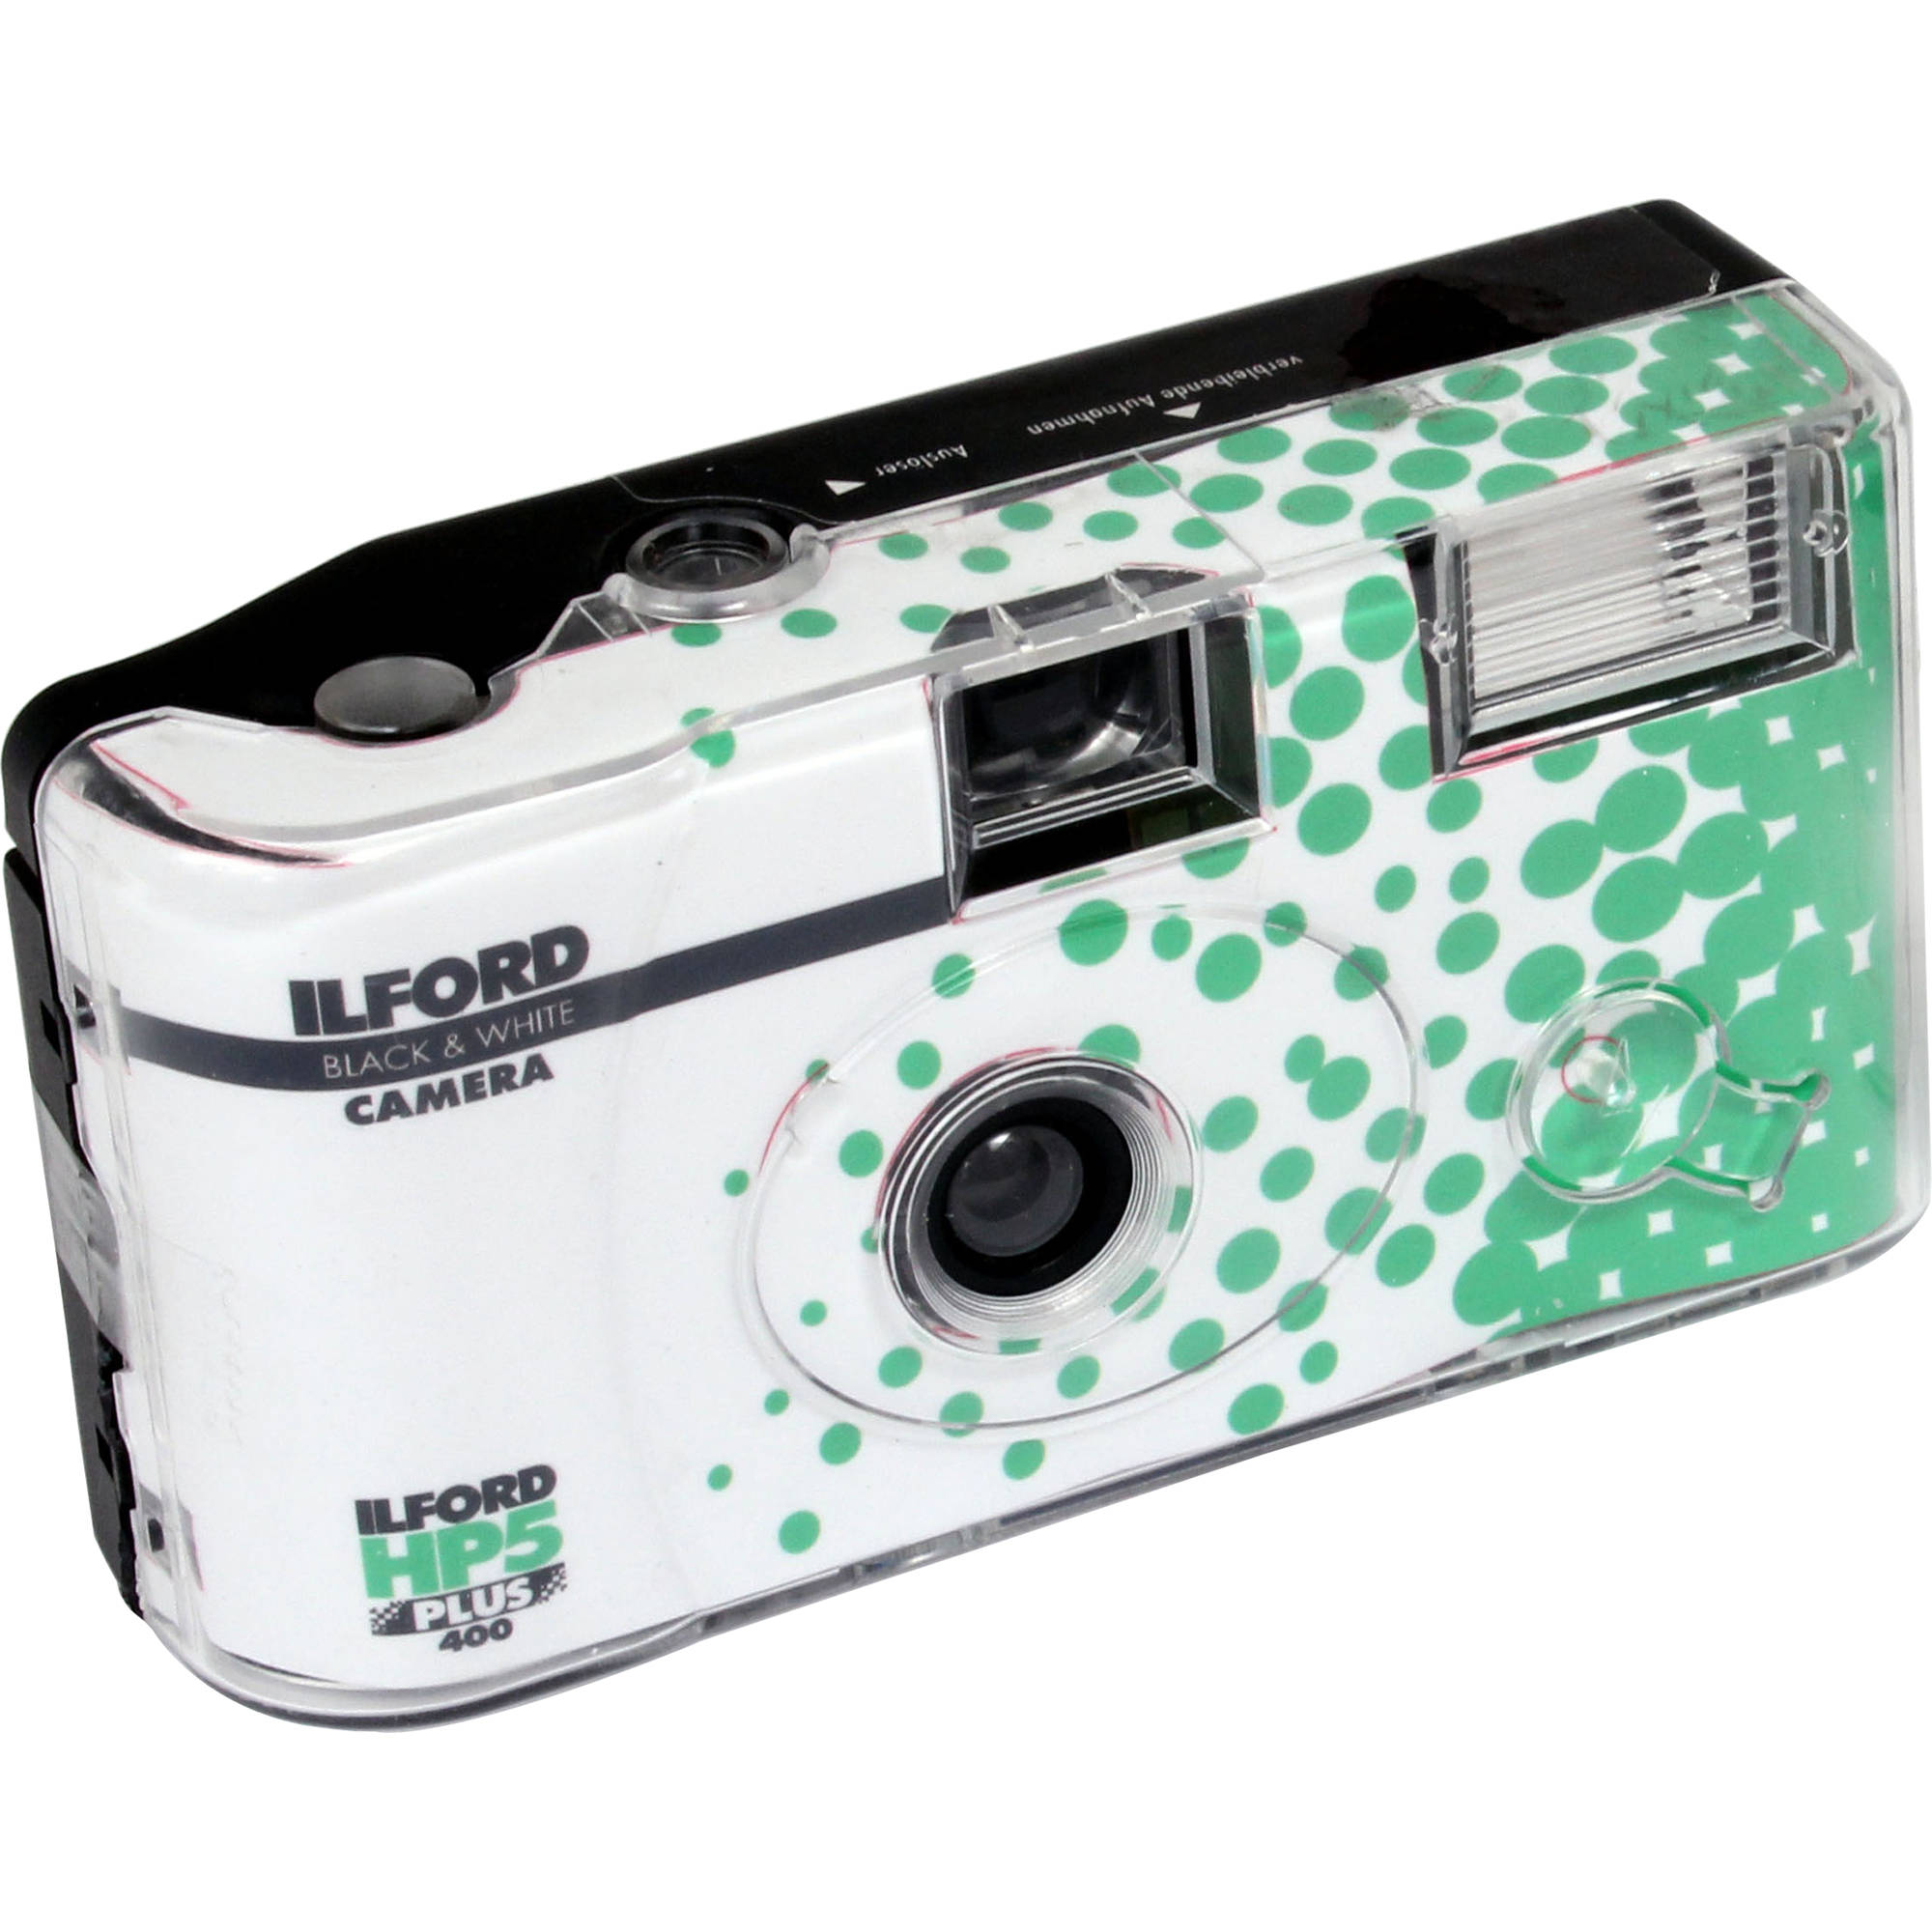 ilford hp5 plus single use camera with flash 27 exposures. Black Bedroom Furniture Sets. Home Design Ideas